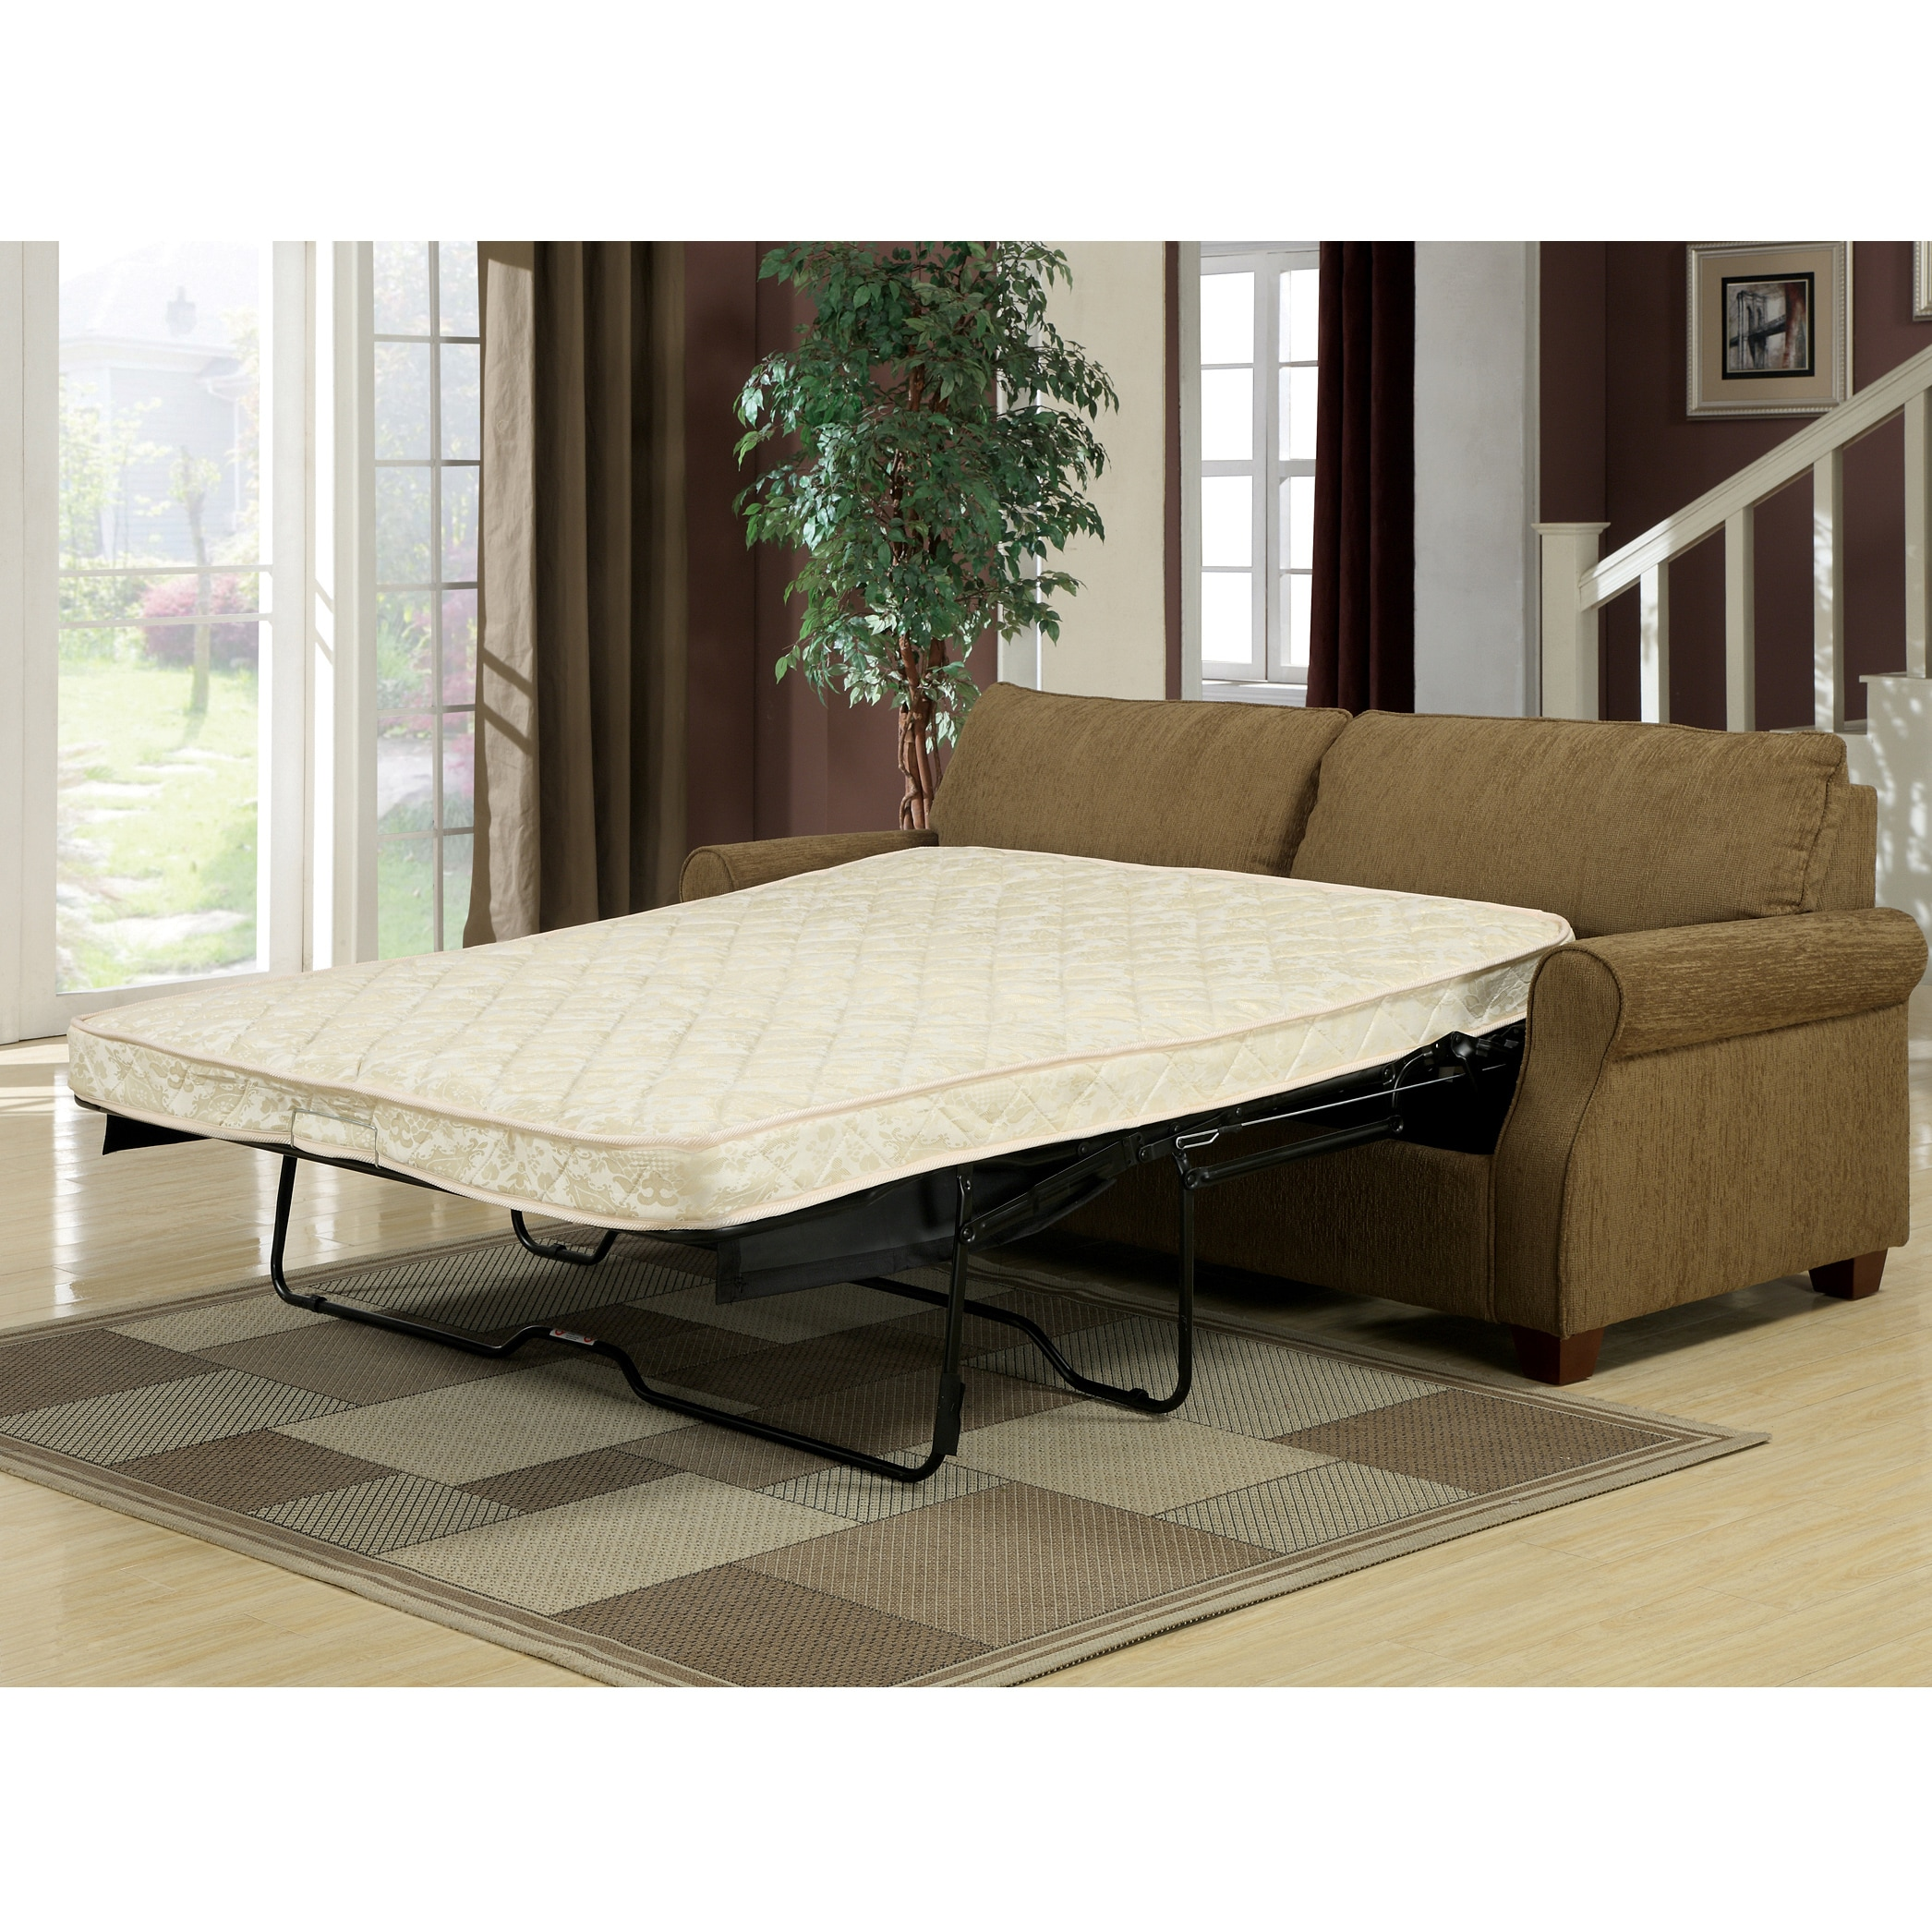 Alex Sofa Bed Sleeper at Sears.com